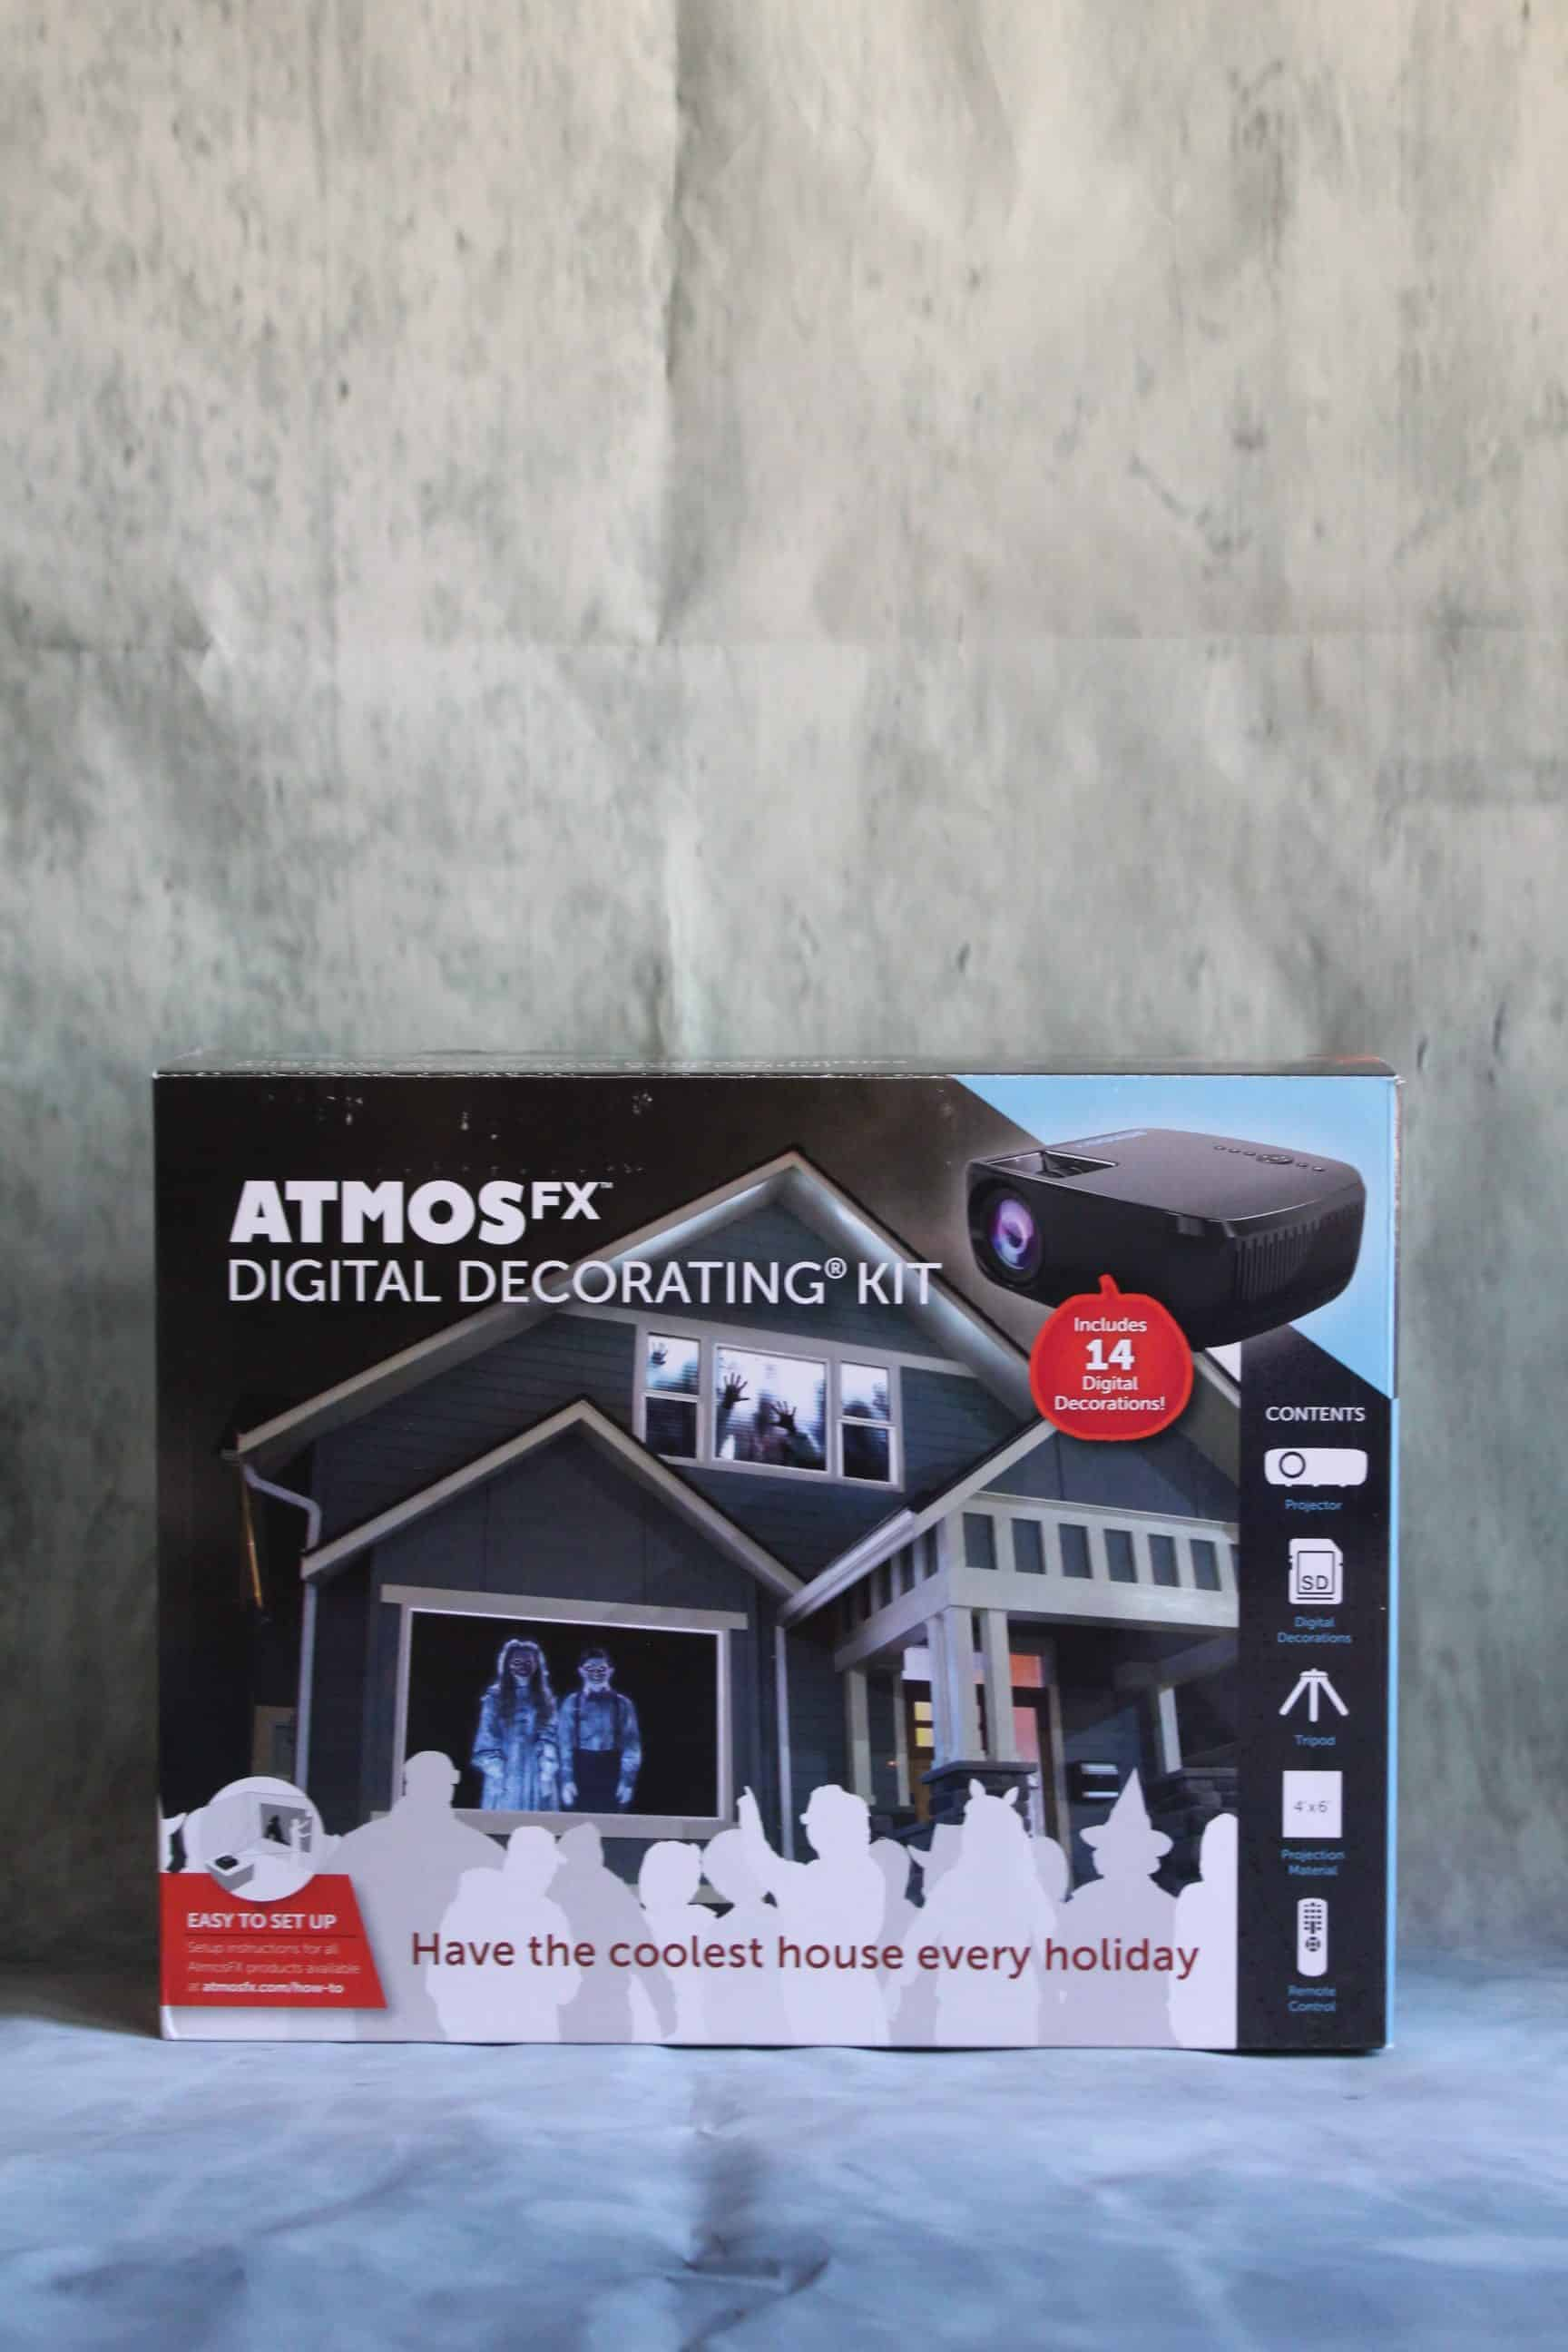 Atmos FX Digital Decorating Kit